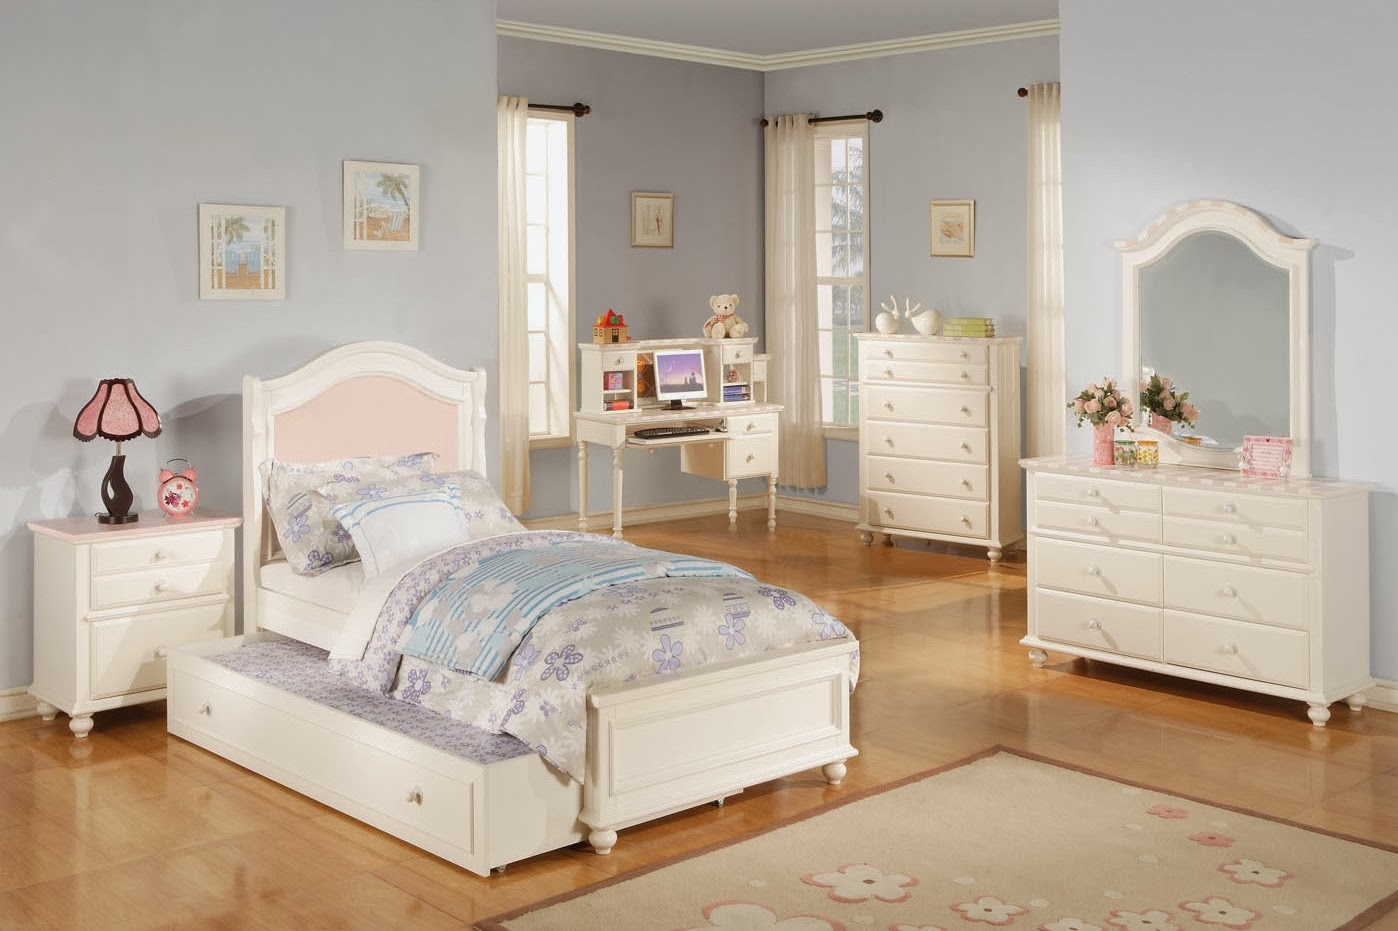 d coration chambre jeune fille d co sphair. Black Bedroom Furniture Sets. Home Design Ideas